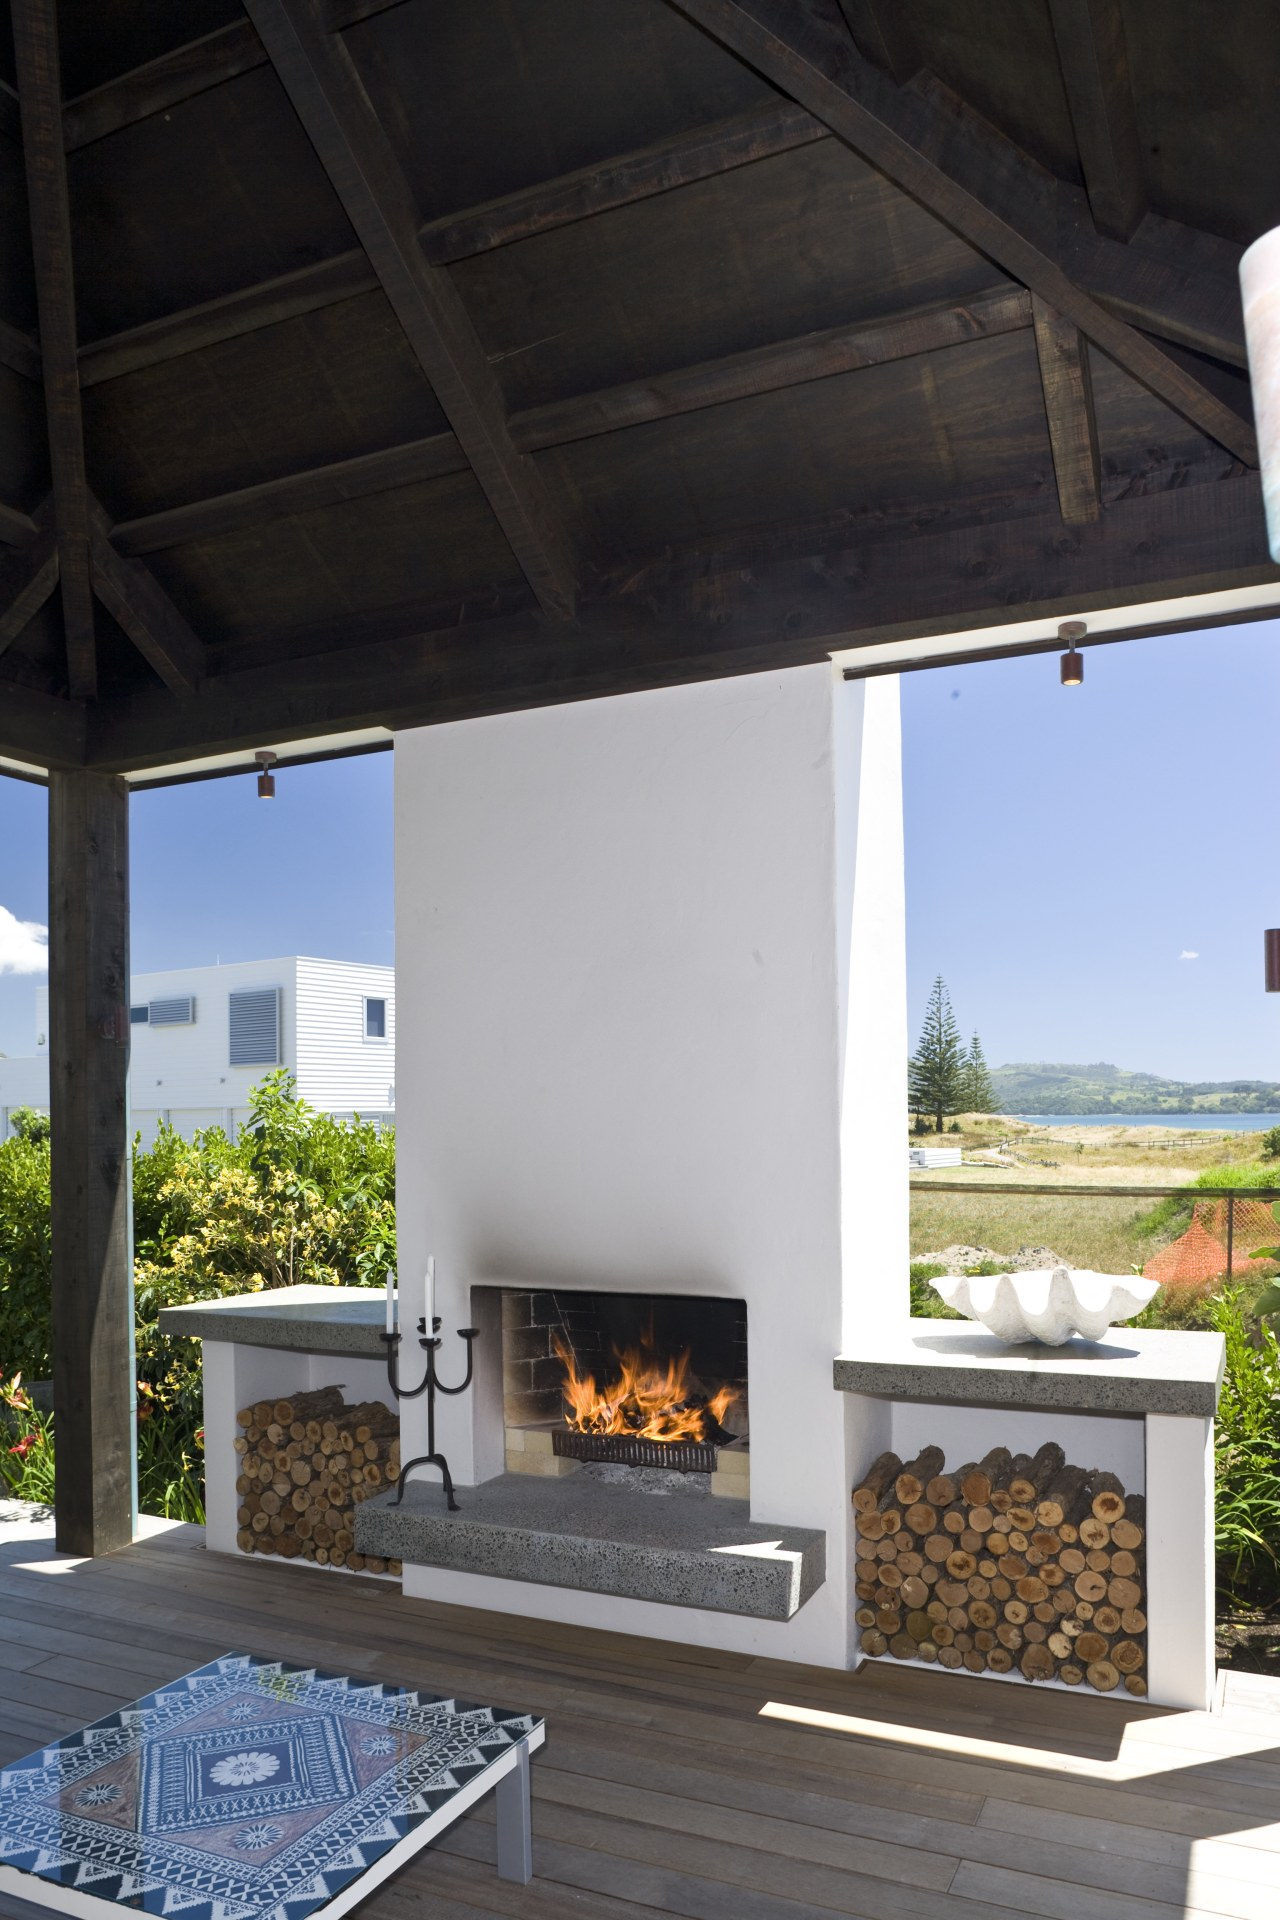 View of the deck with outdoor fireplace, decking, fireplace, hearth, black, gray